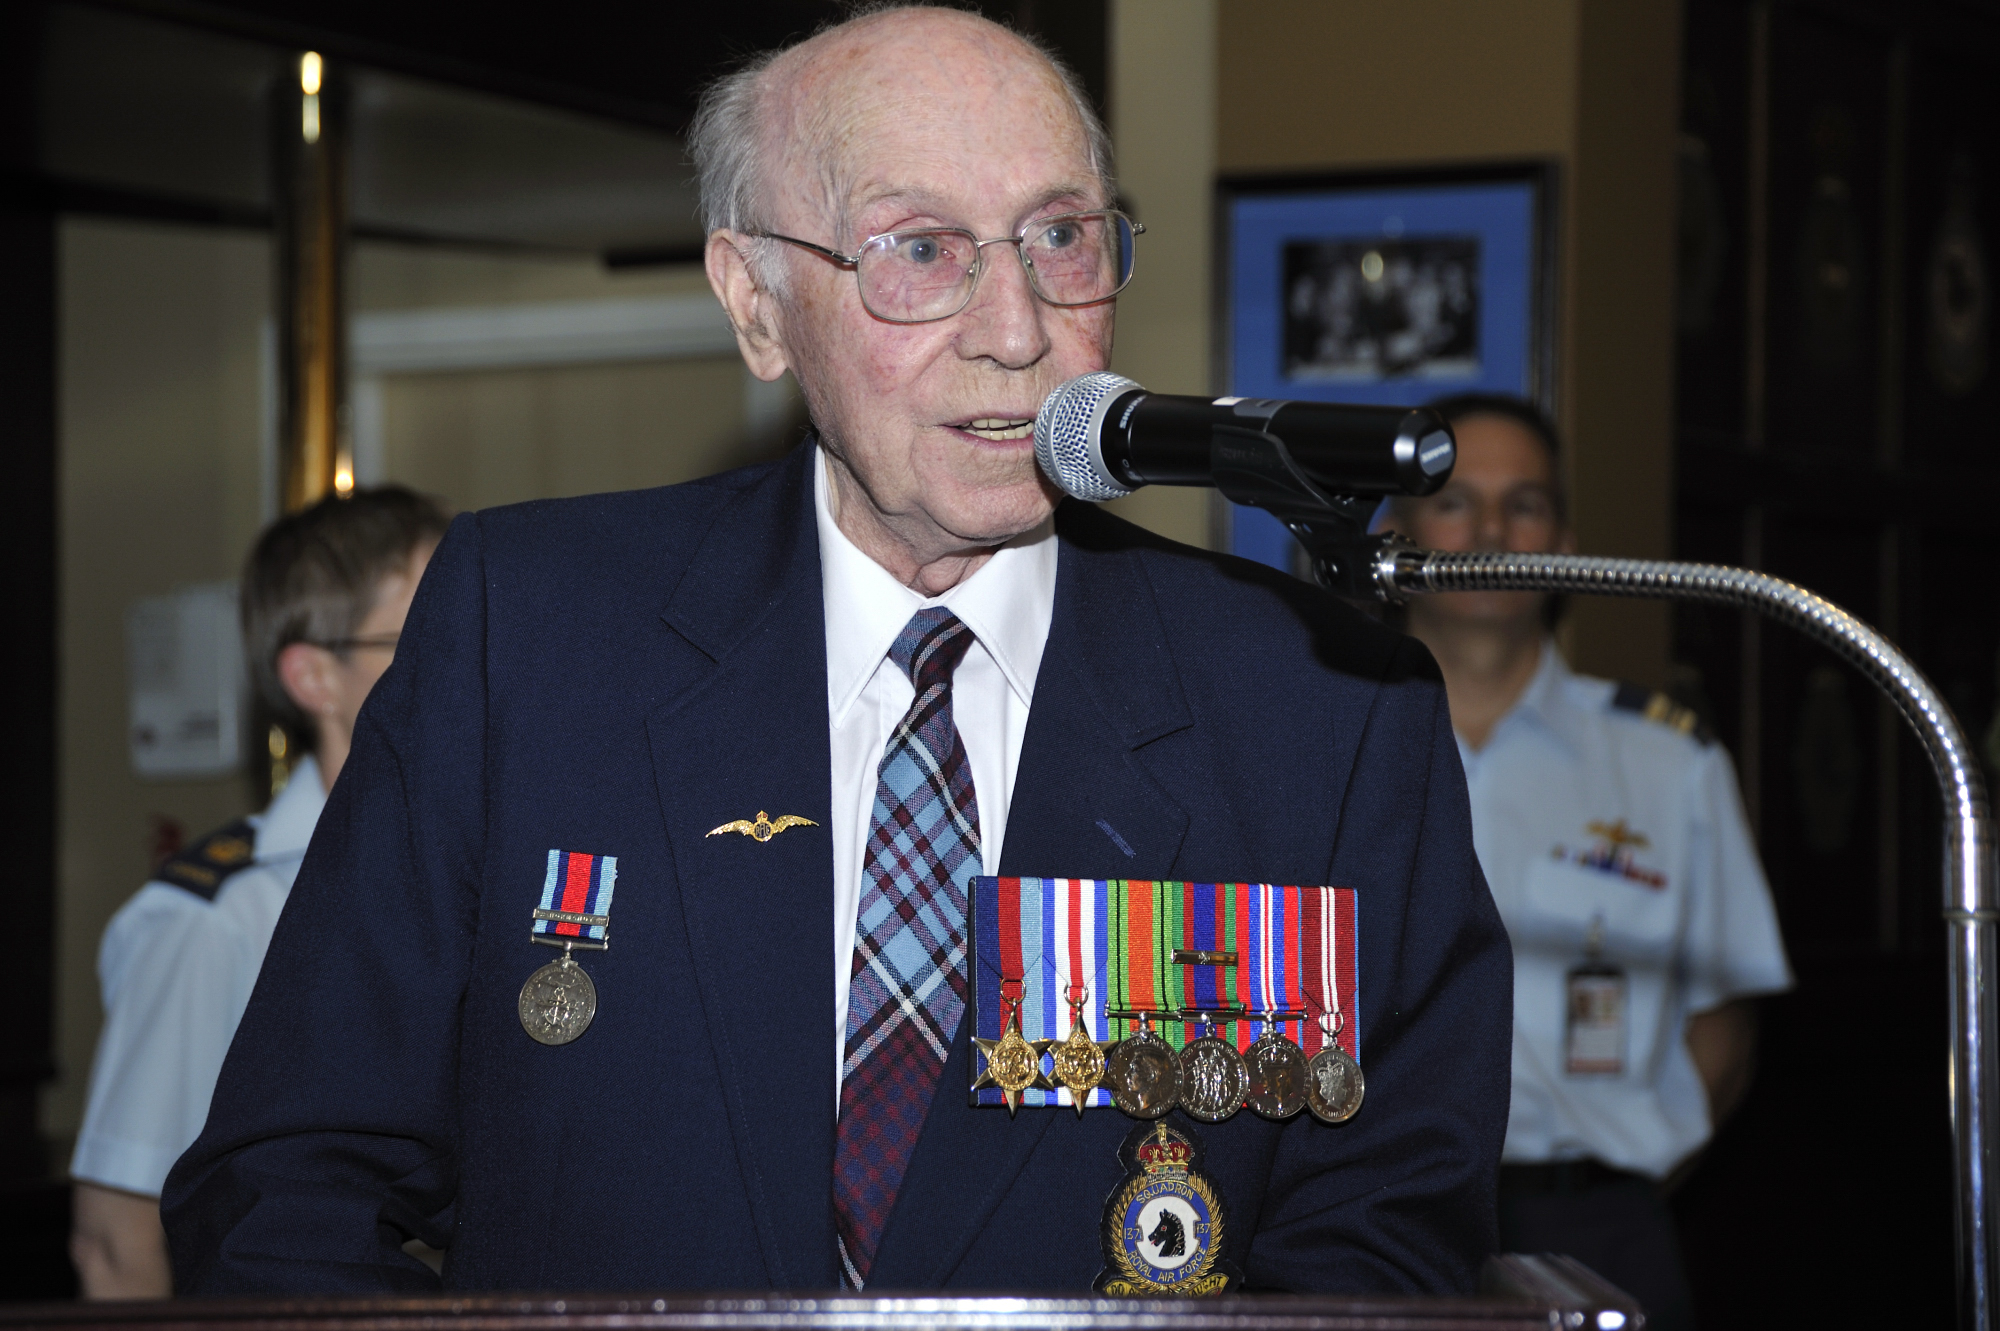 "In autumn 2012, Flight Lieutenant (retired) John Colton held military and civilian members of RCAF Headquarters Staff in Ottawa spell-bound as he spoke about his war-era experiences. The then-commander of the RCAF also presented him with a unique certificate of recognition that read, in part, ""For outstanding service to Canada in the Royal Canadian Air Force as a Typhoon fighter-bomber pilot in Europe during the Second World War. Through your bravery, courage, skill and audacity, you survived 104 combat missions and served as an inspiration to your fellow aviators during combat. Today, you are the ultimate role model for contemporary airmen and airwomen in the modern Royal Canadian Air Force."" PHOTO: Sergeant Pascal Quillé, FA2012-4000-21"